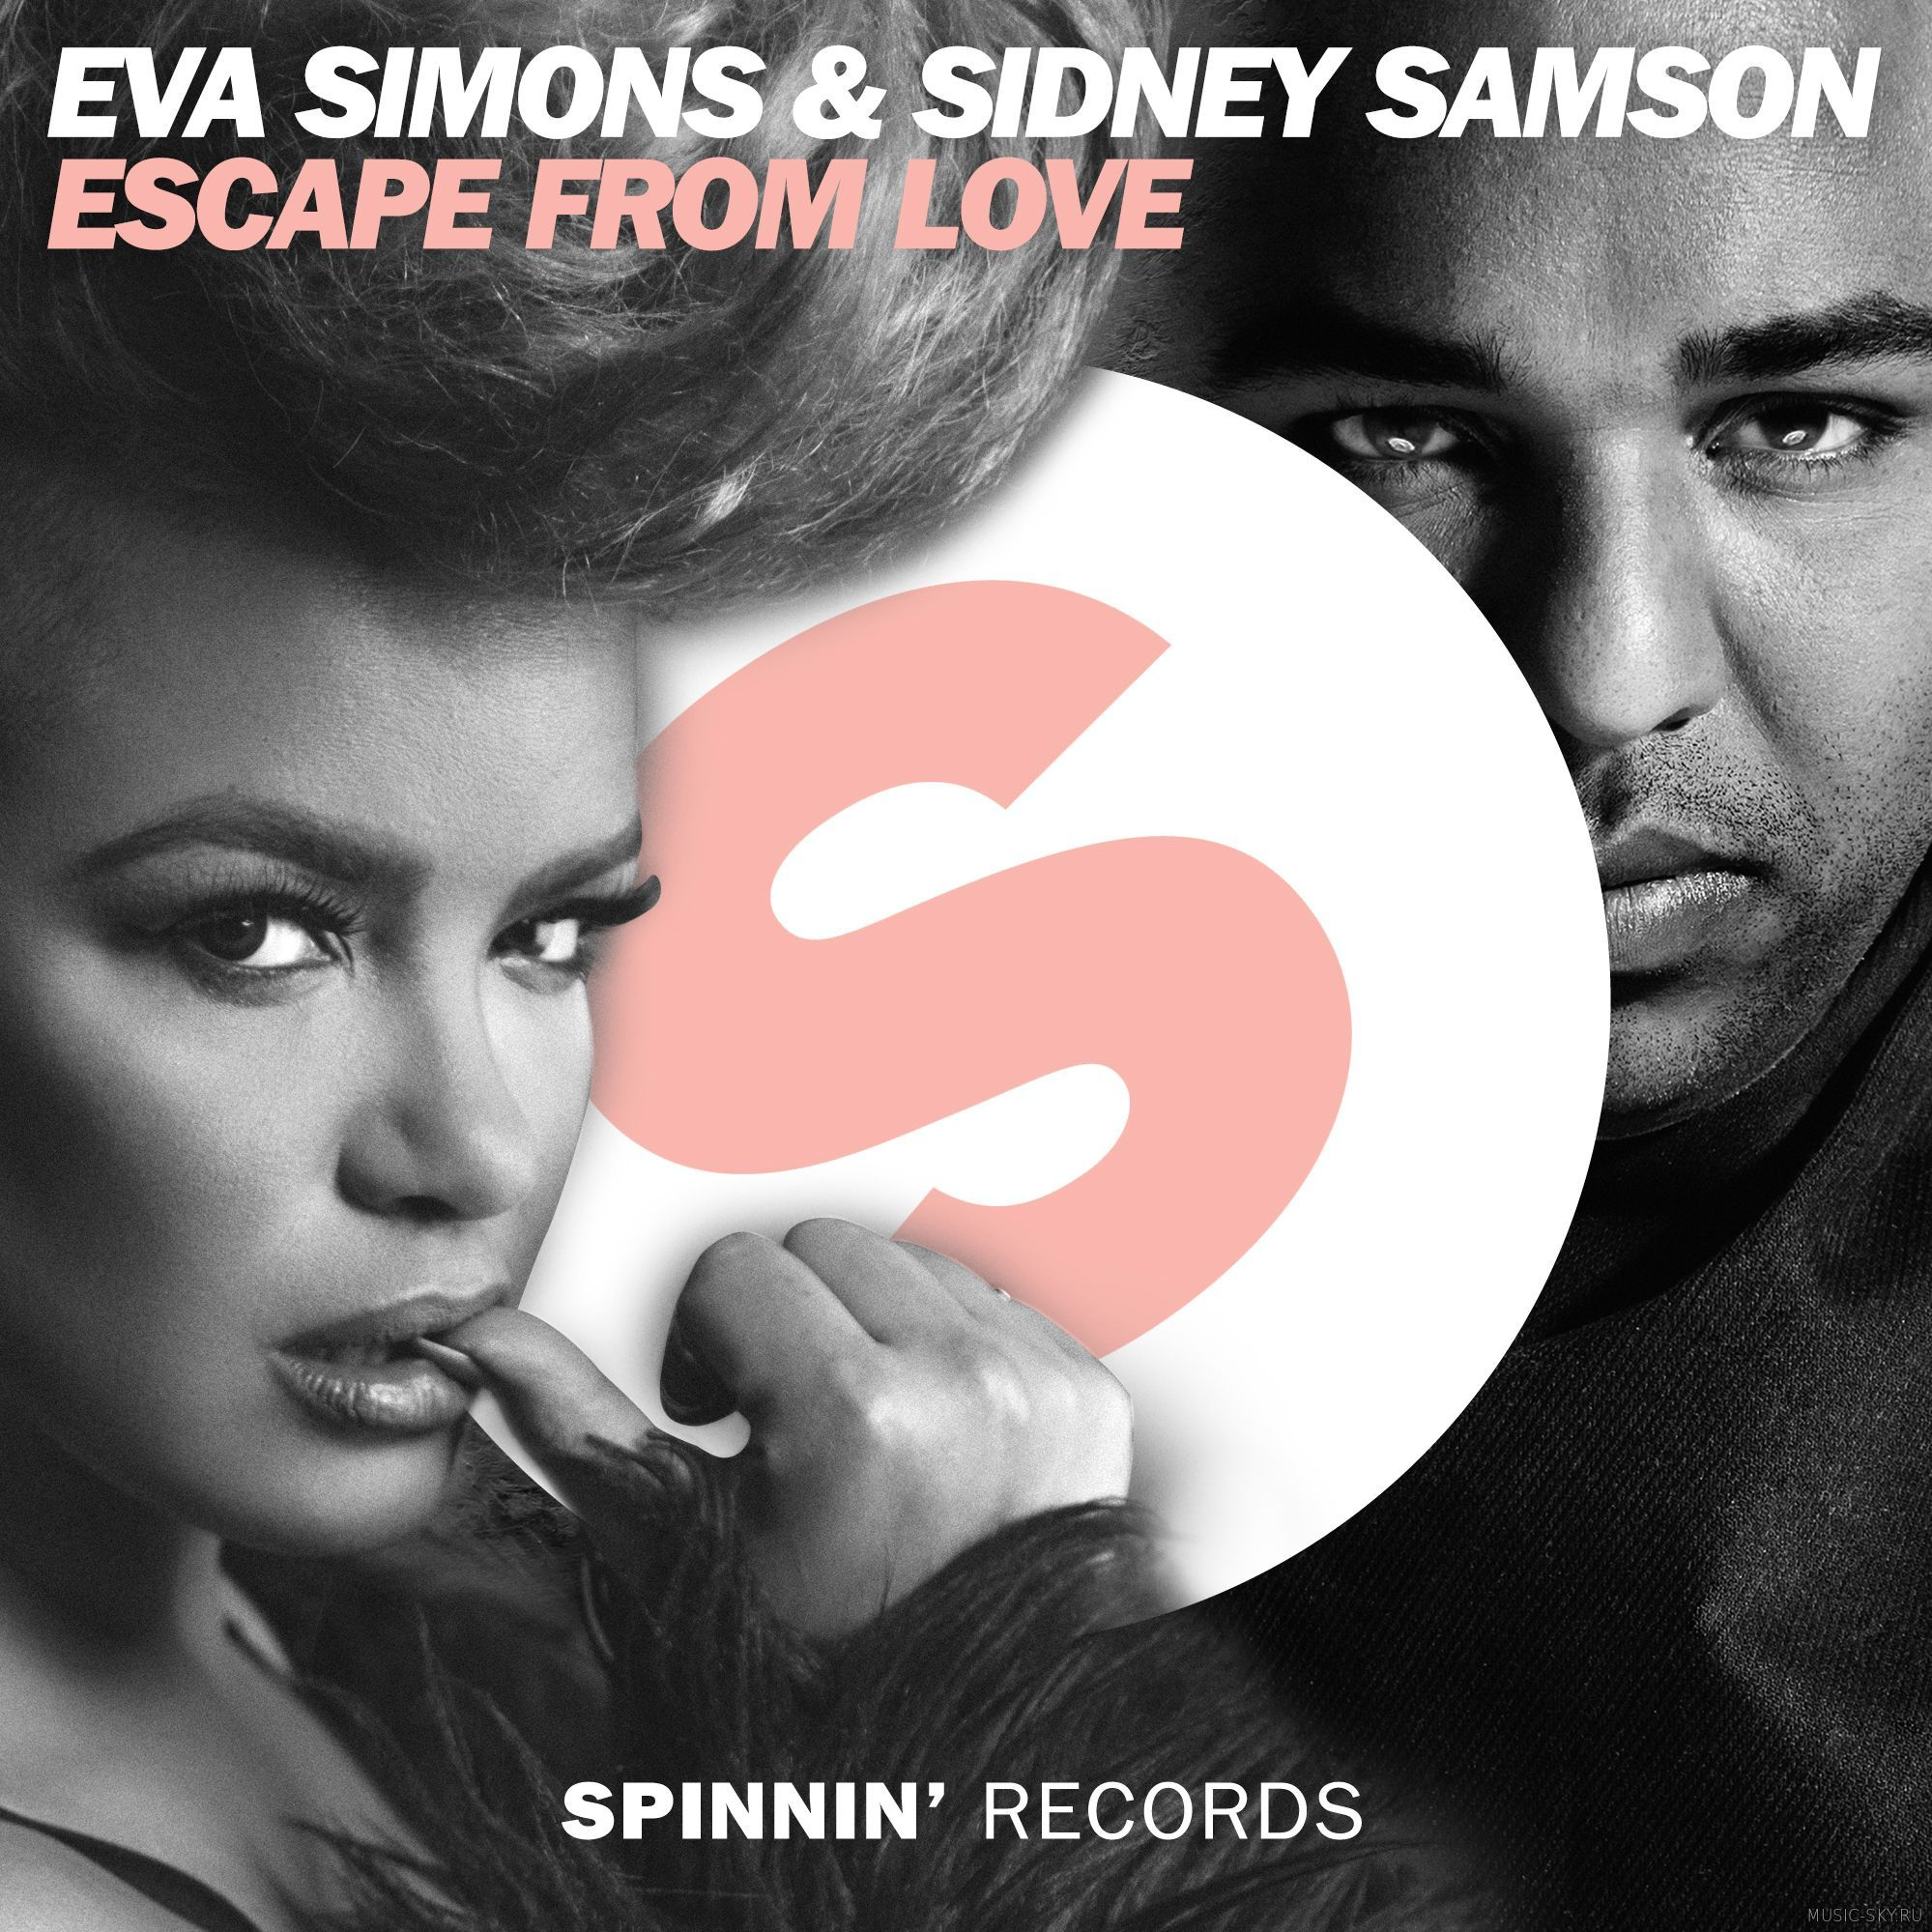 Sidney Samson & Eva Simons — Escape From Love (Original Mix)